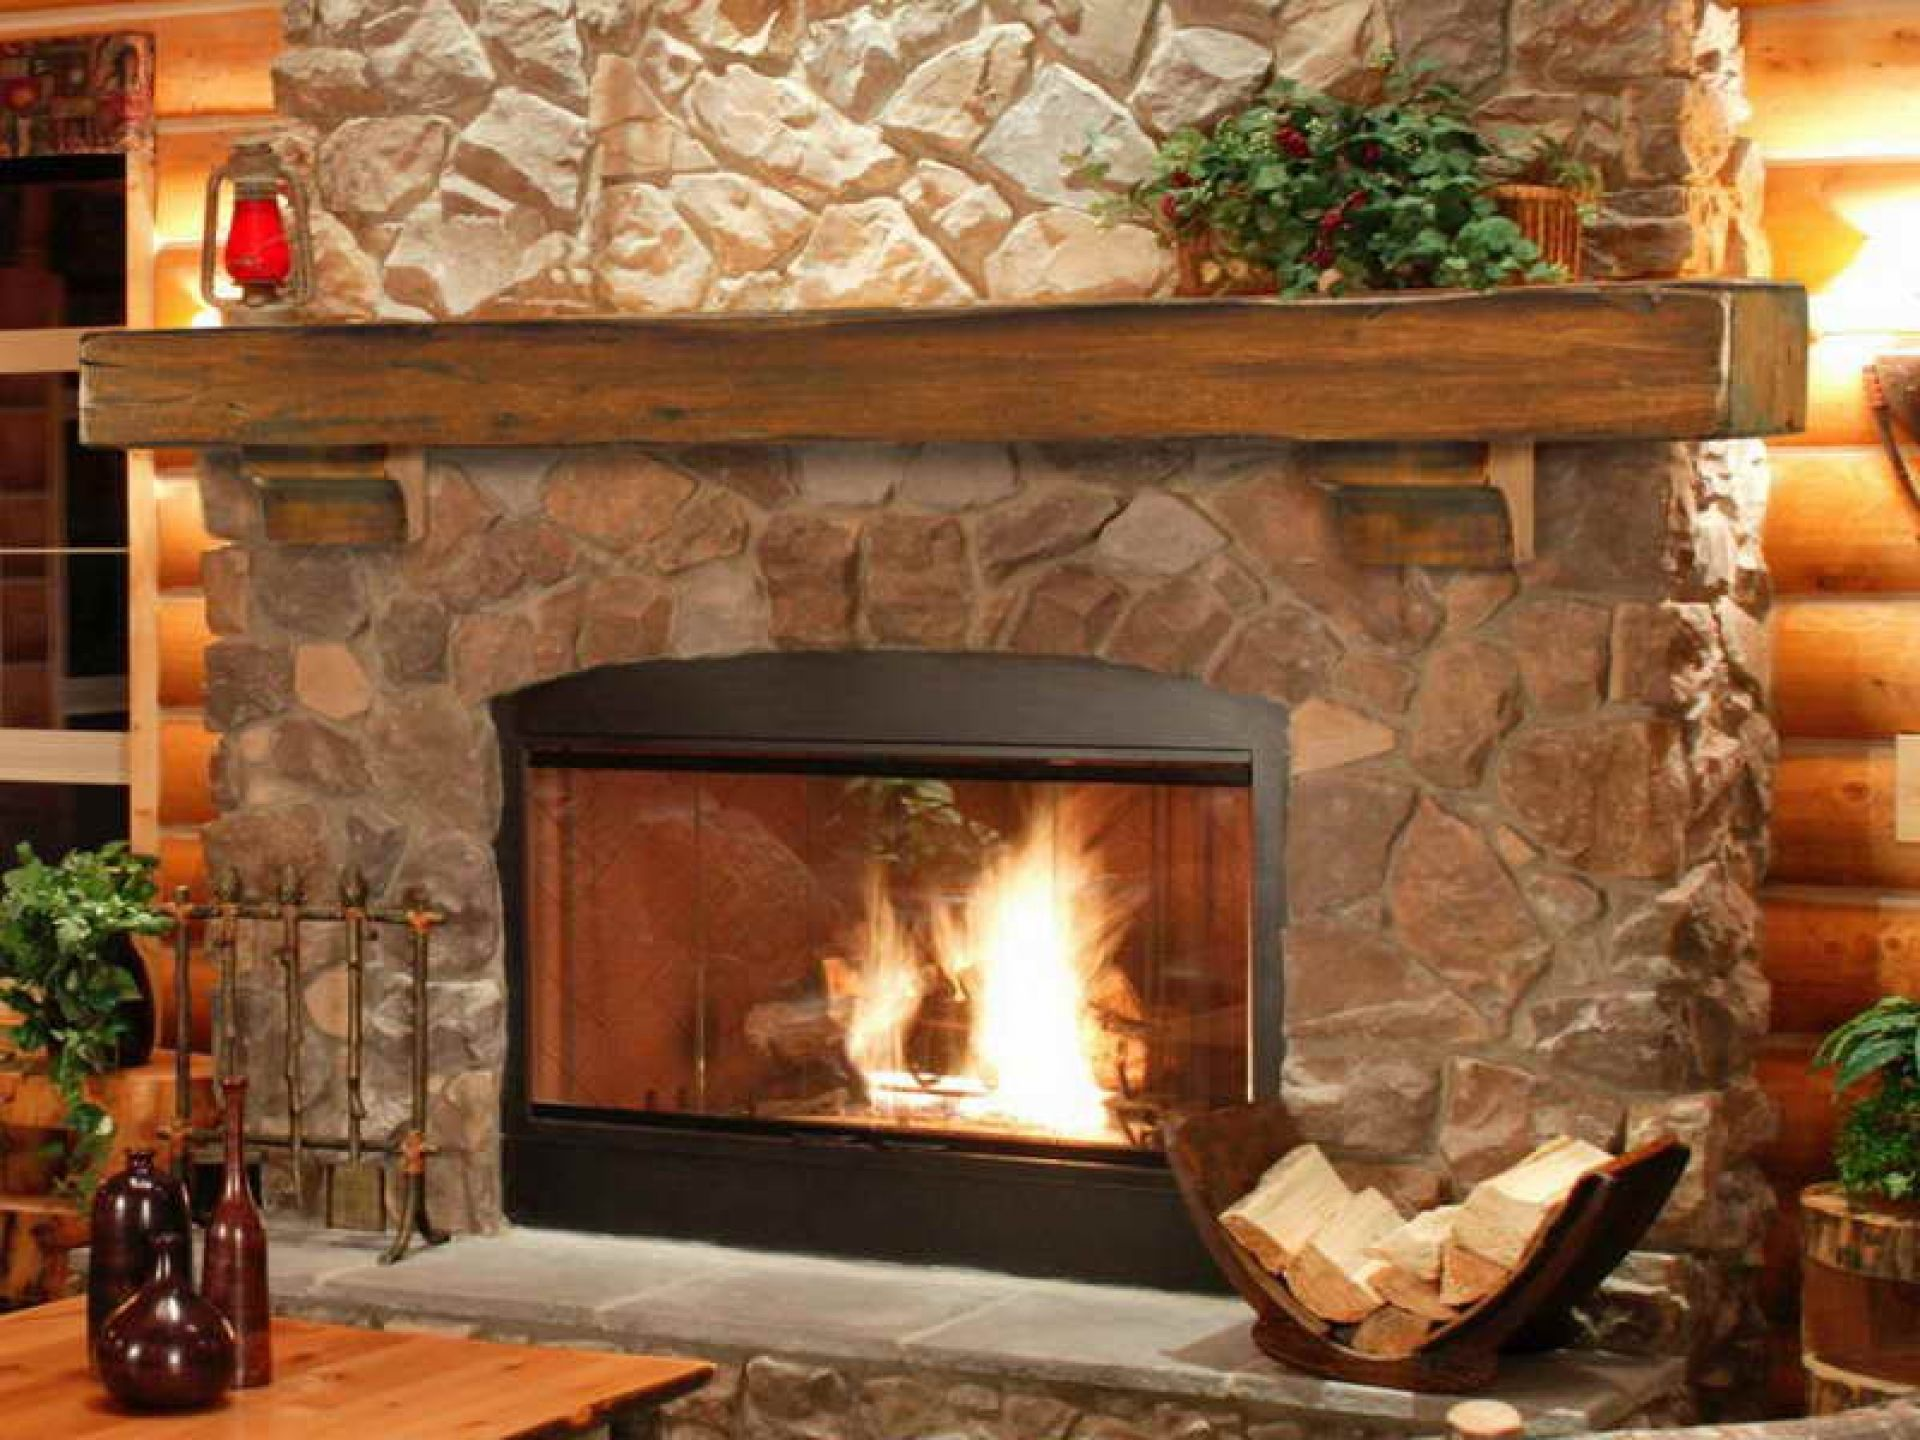 Cool stone fireplace mantels for interior design natural for Wood fireplace surround designs